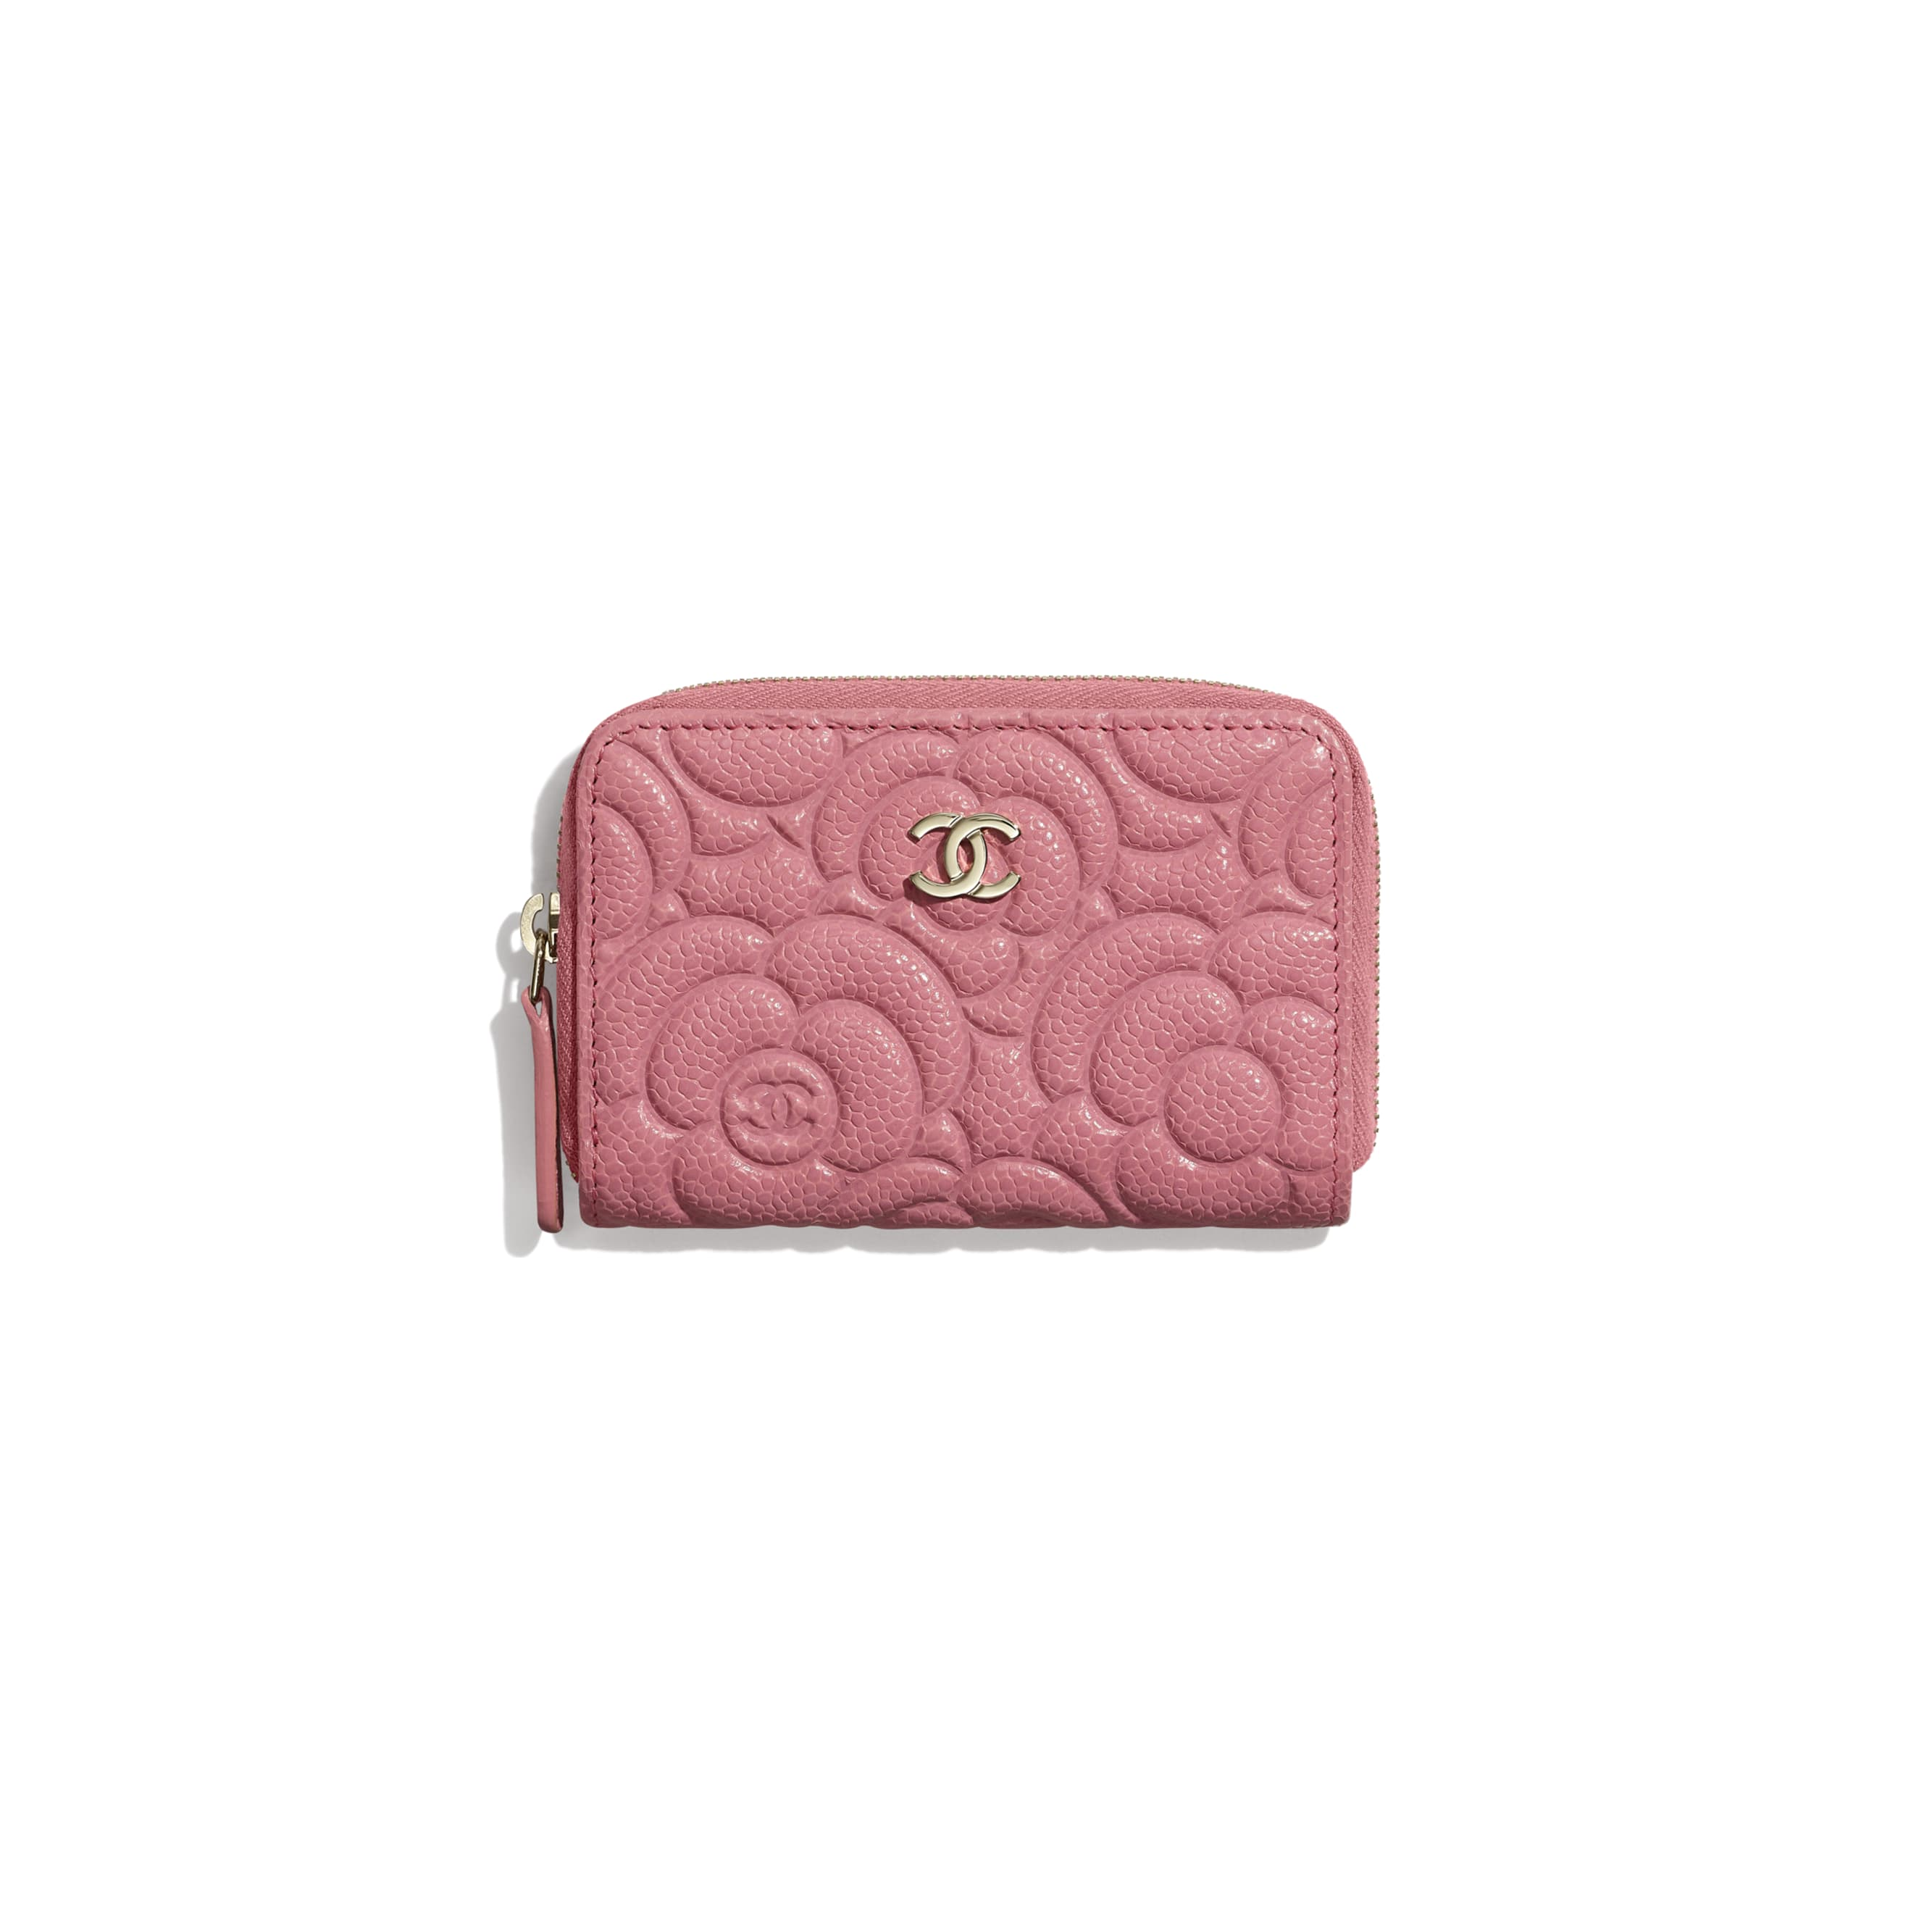 Zipped Coin Purse - Pink - Grained Shiny Calfskin & Gold-Tone Metal - CHANEL - Default view - see standard sized version